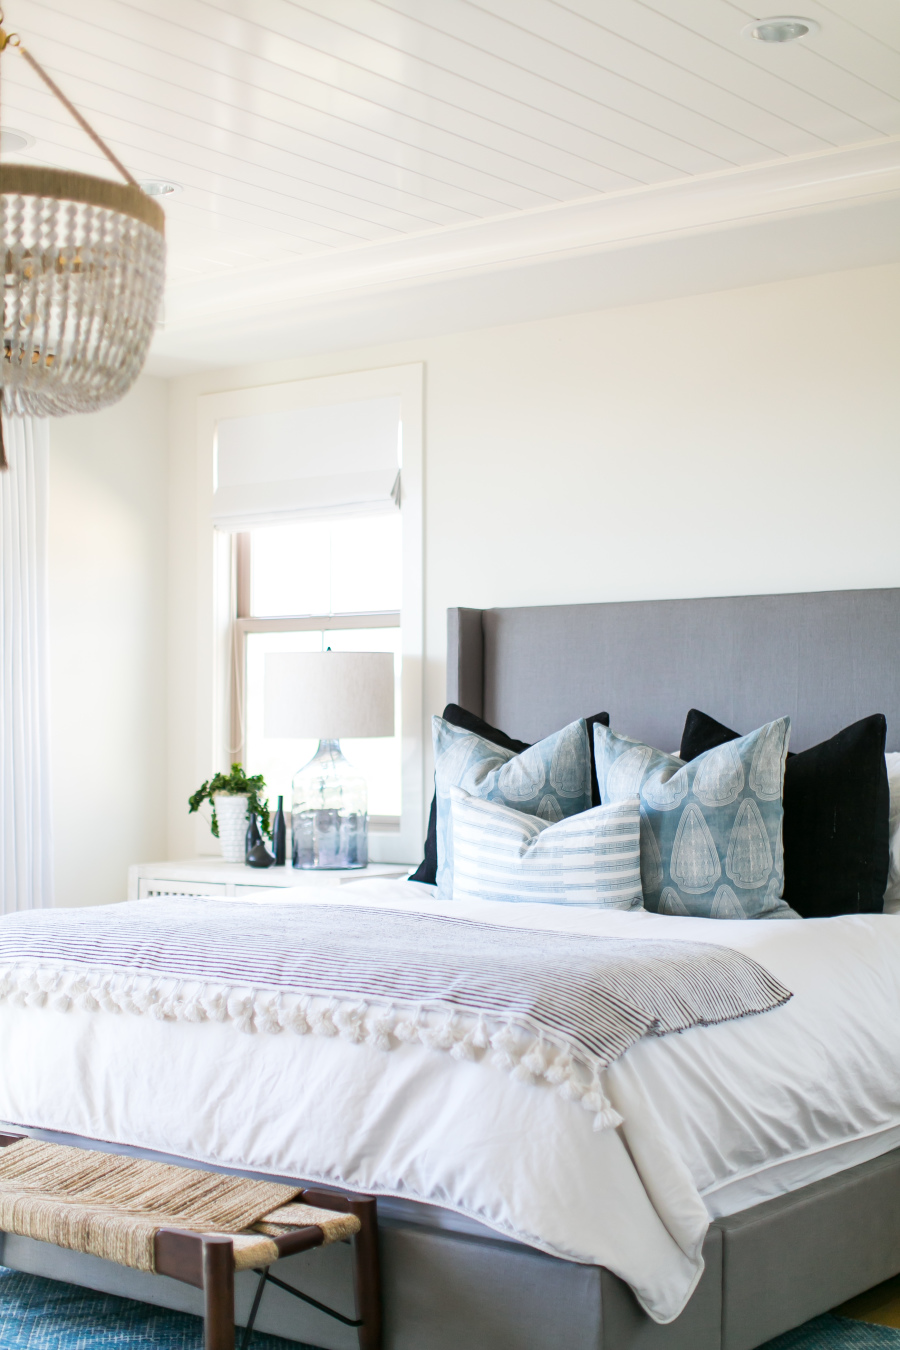 Get the look of this fresh feeling blue and white coastal style bedroom on the blog! I'm loving the simple look of this bedroom with its upholstered wingback headboard and blue pillows.